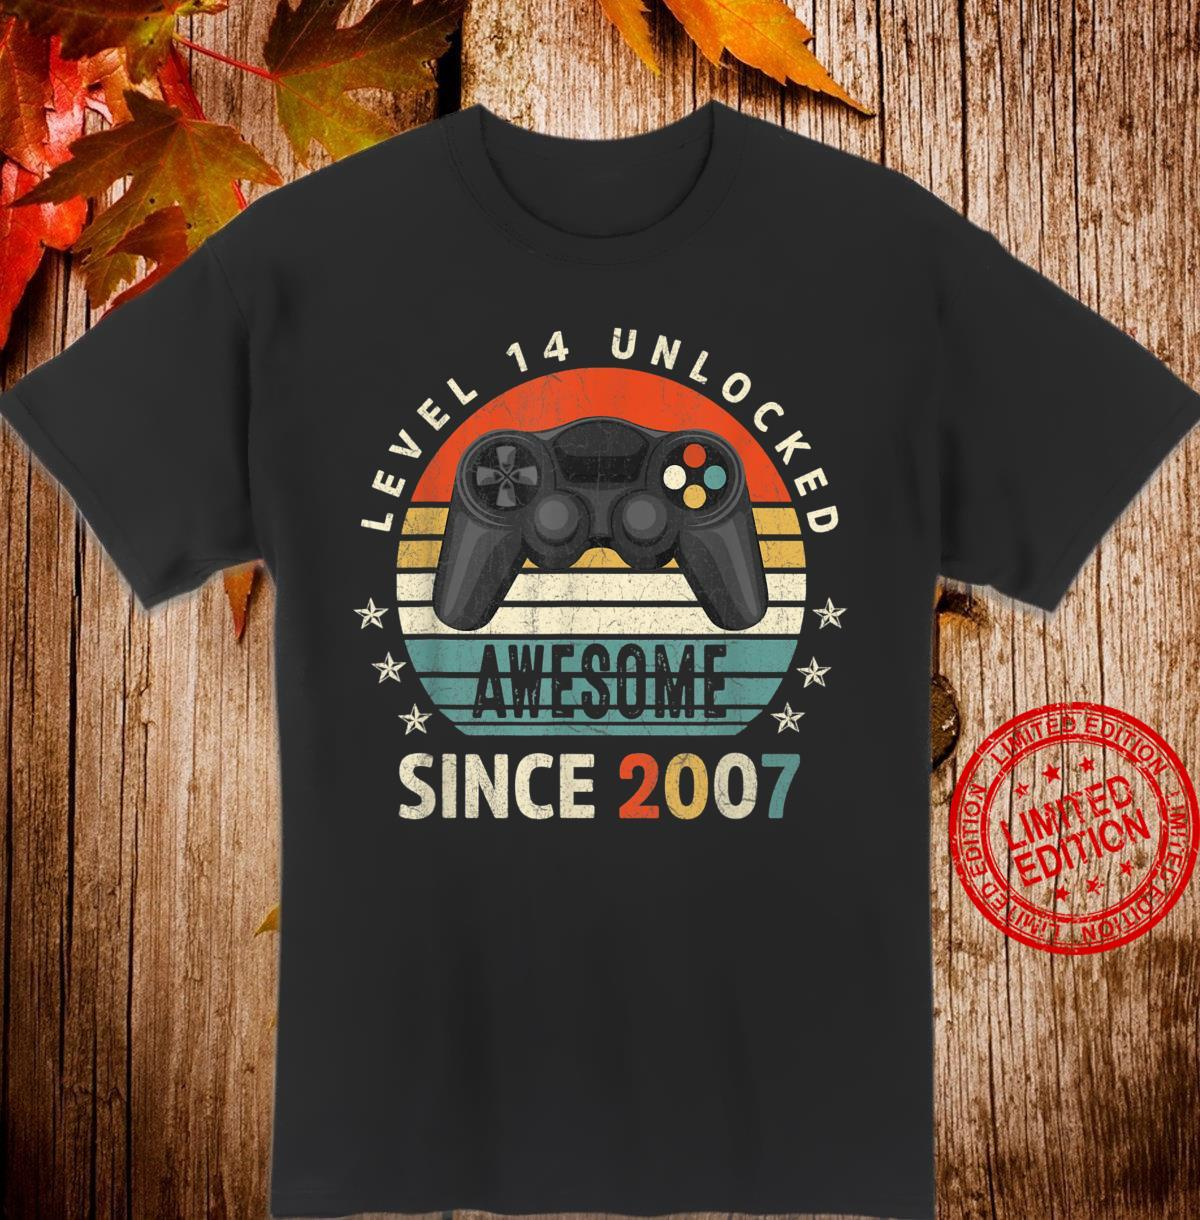 Level 14 Unlocked Awesome 2007 Video Game 14th Bday Shirt